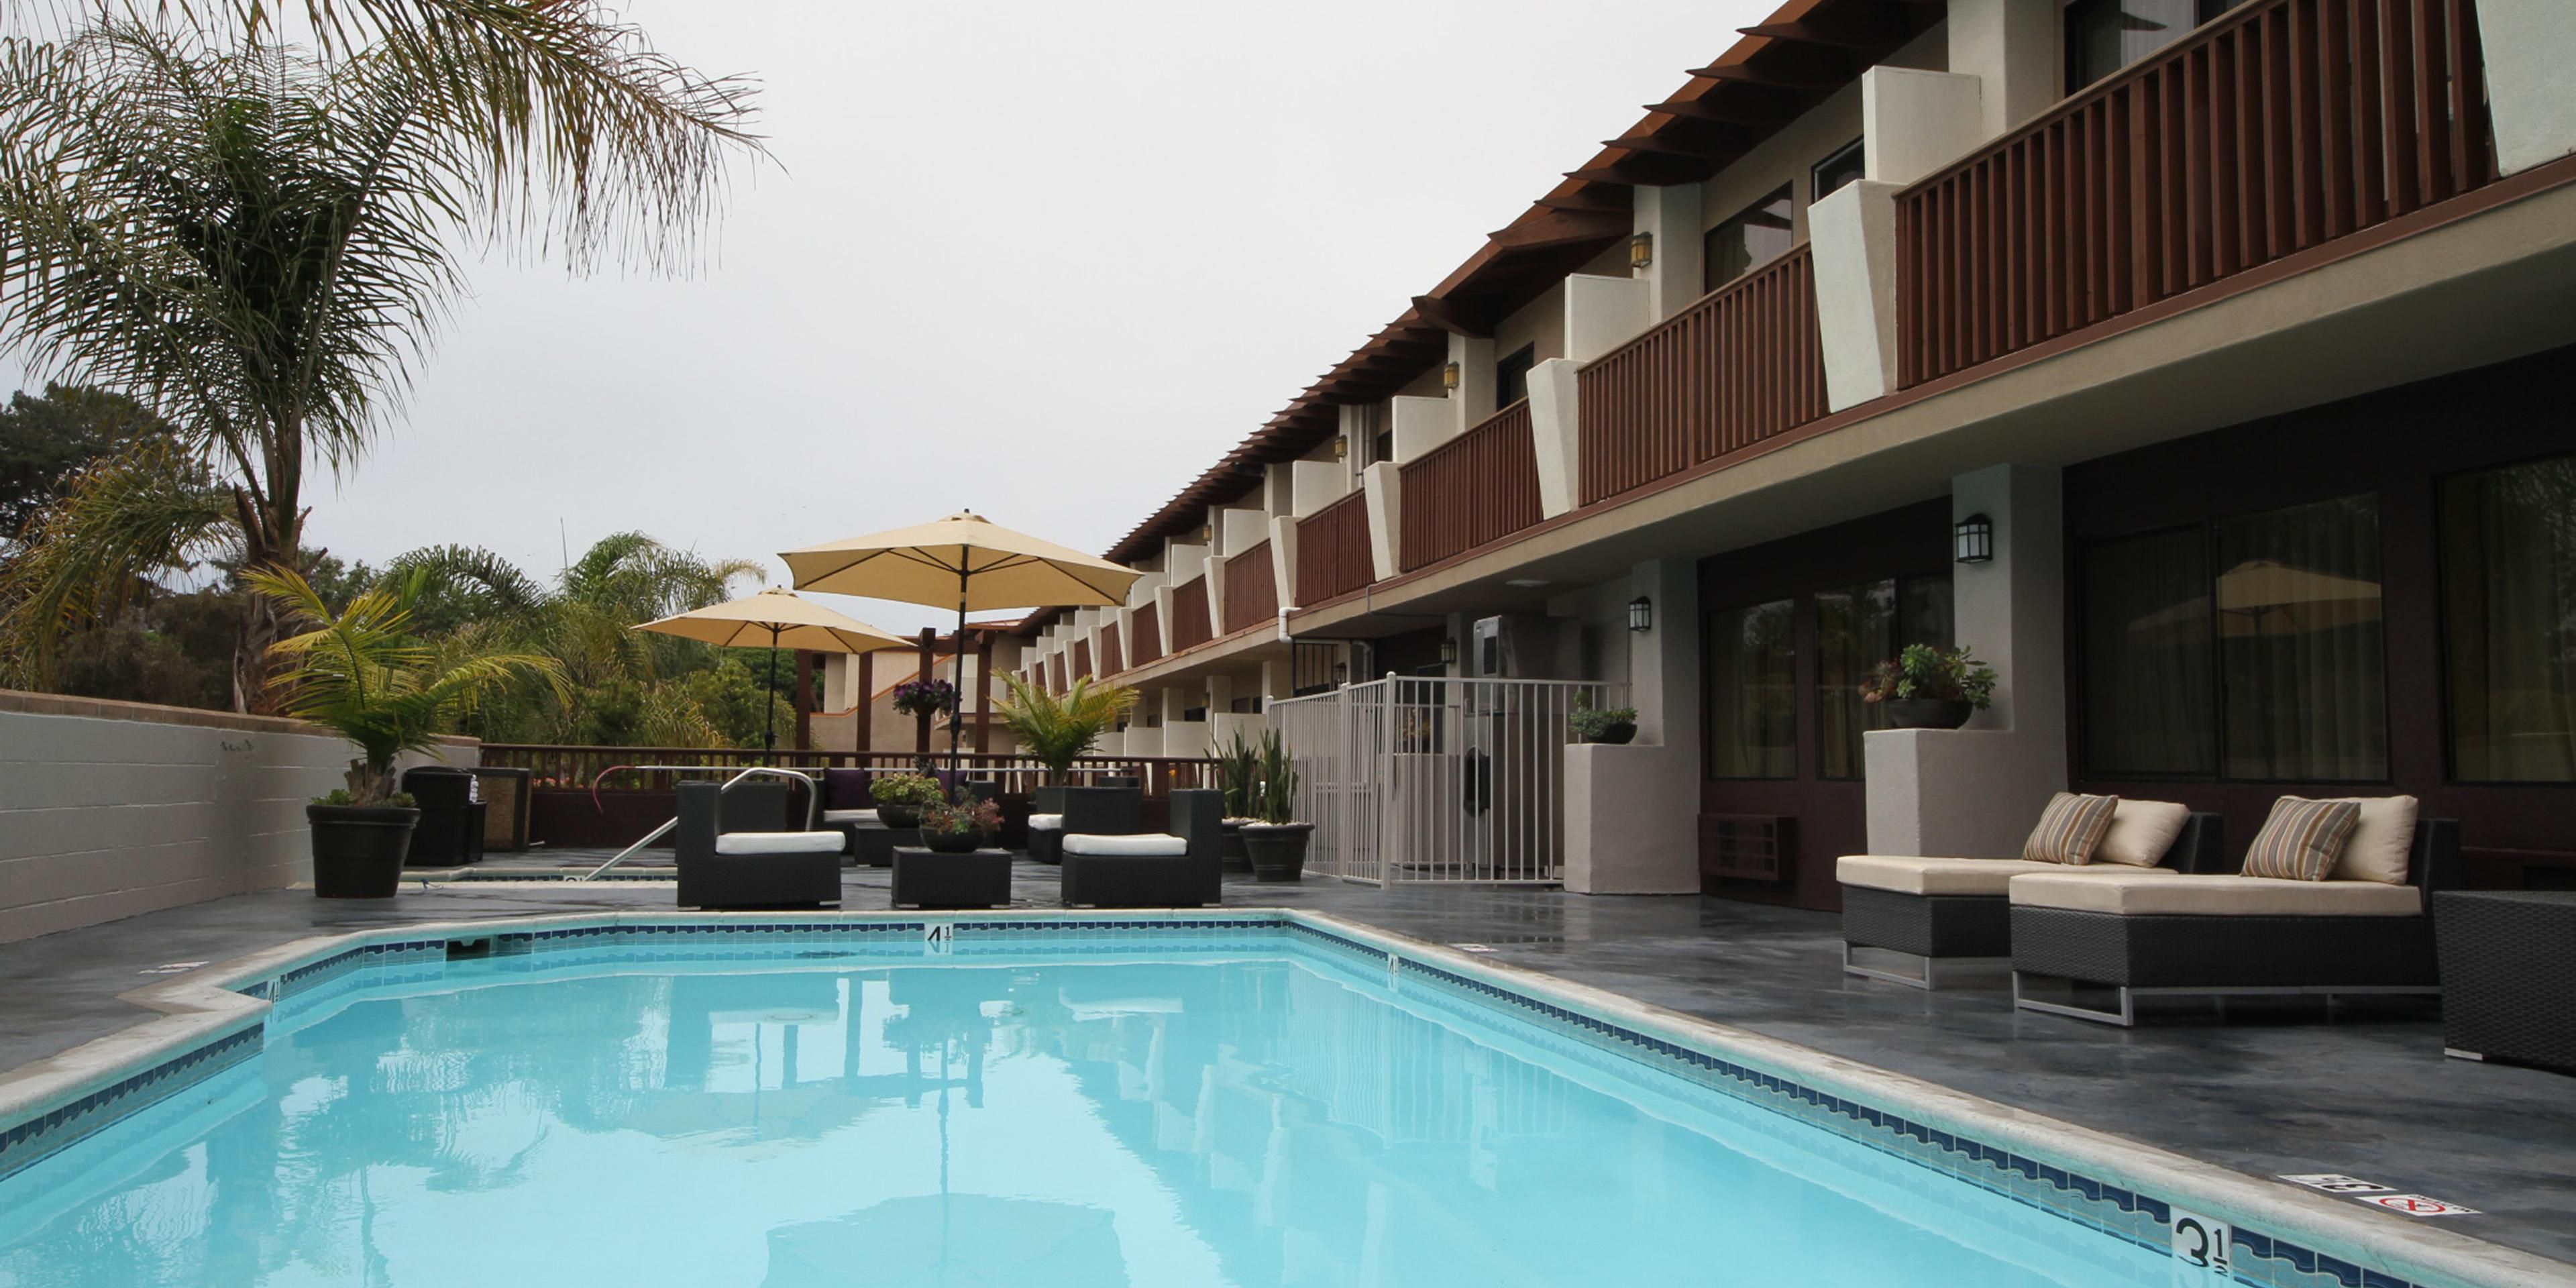 Holiday Inn Express And Suites Solana Beach 4658888102